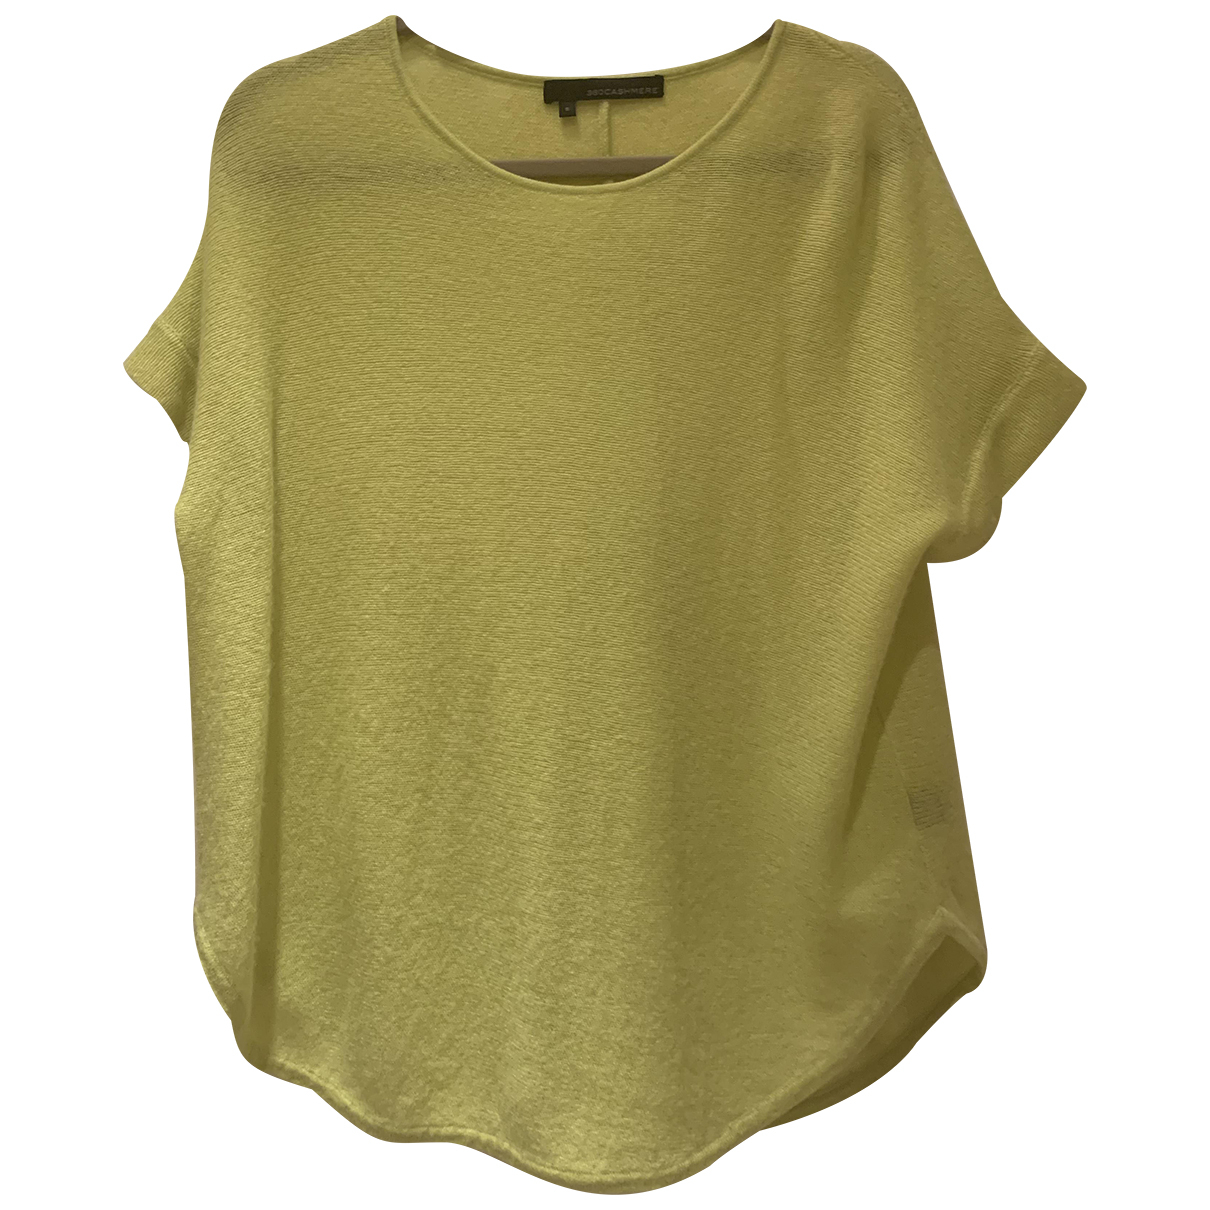 360 Cashmere N Yellow Cashmere Knitwear for Women S International